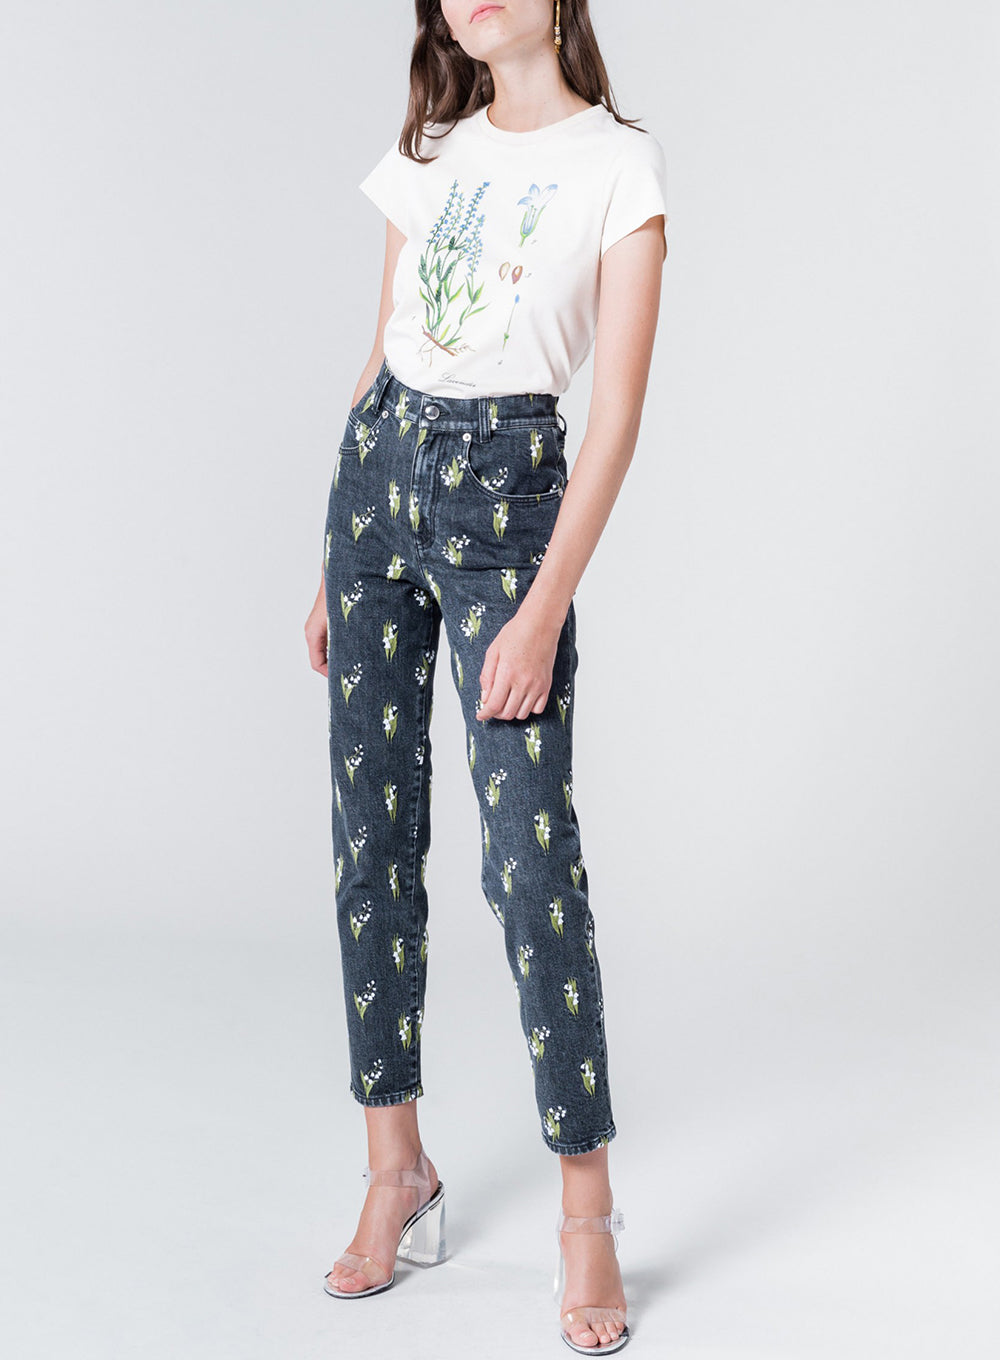 SONIA RYKIEL | Denim Trousers in Lily of the Valley Print